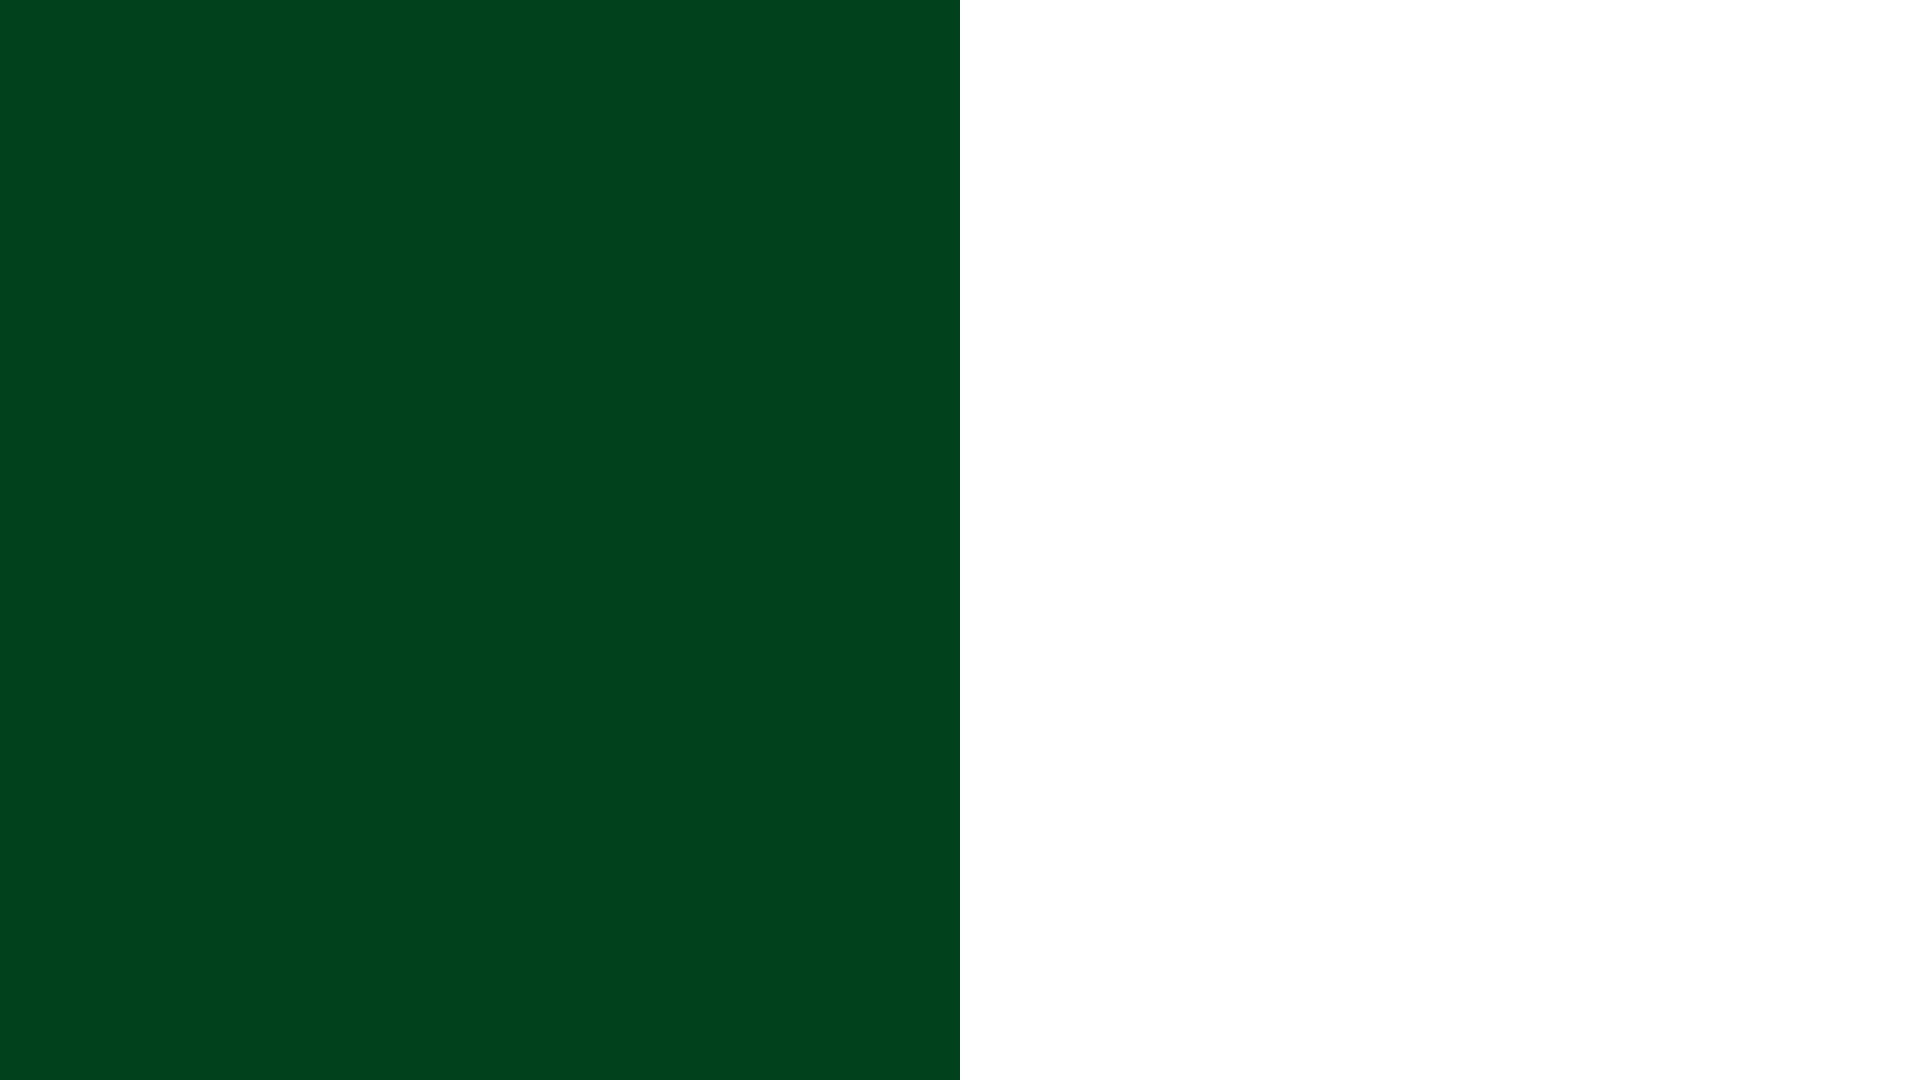 Pakistan Flag Colors